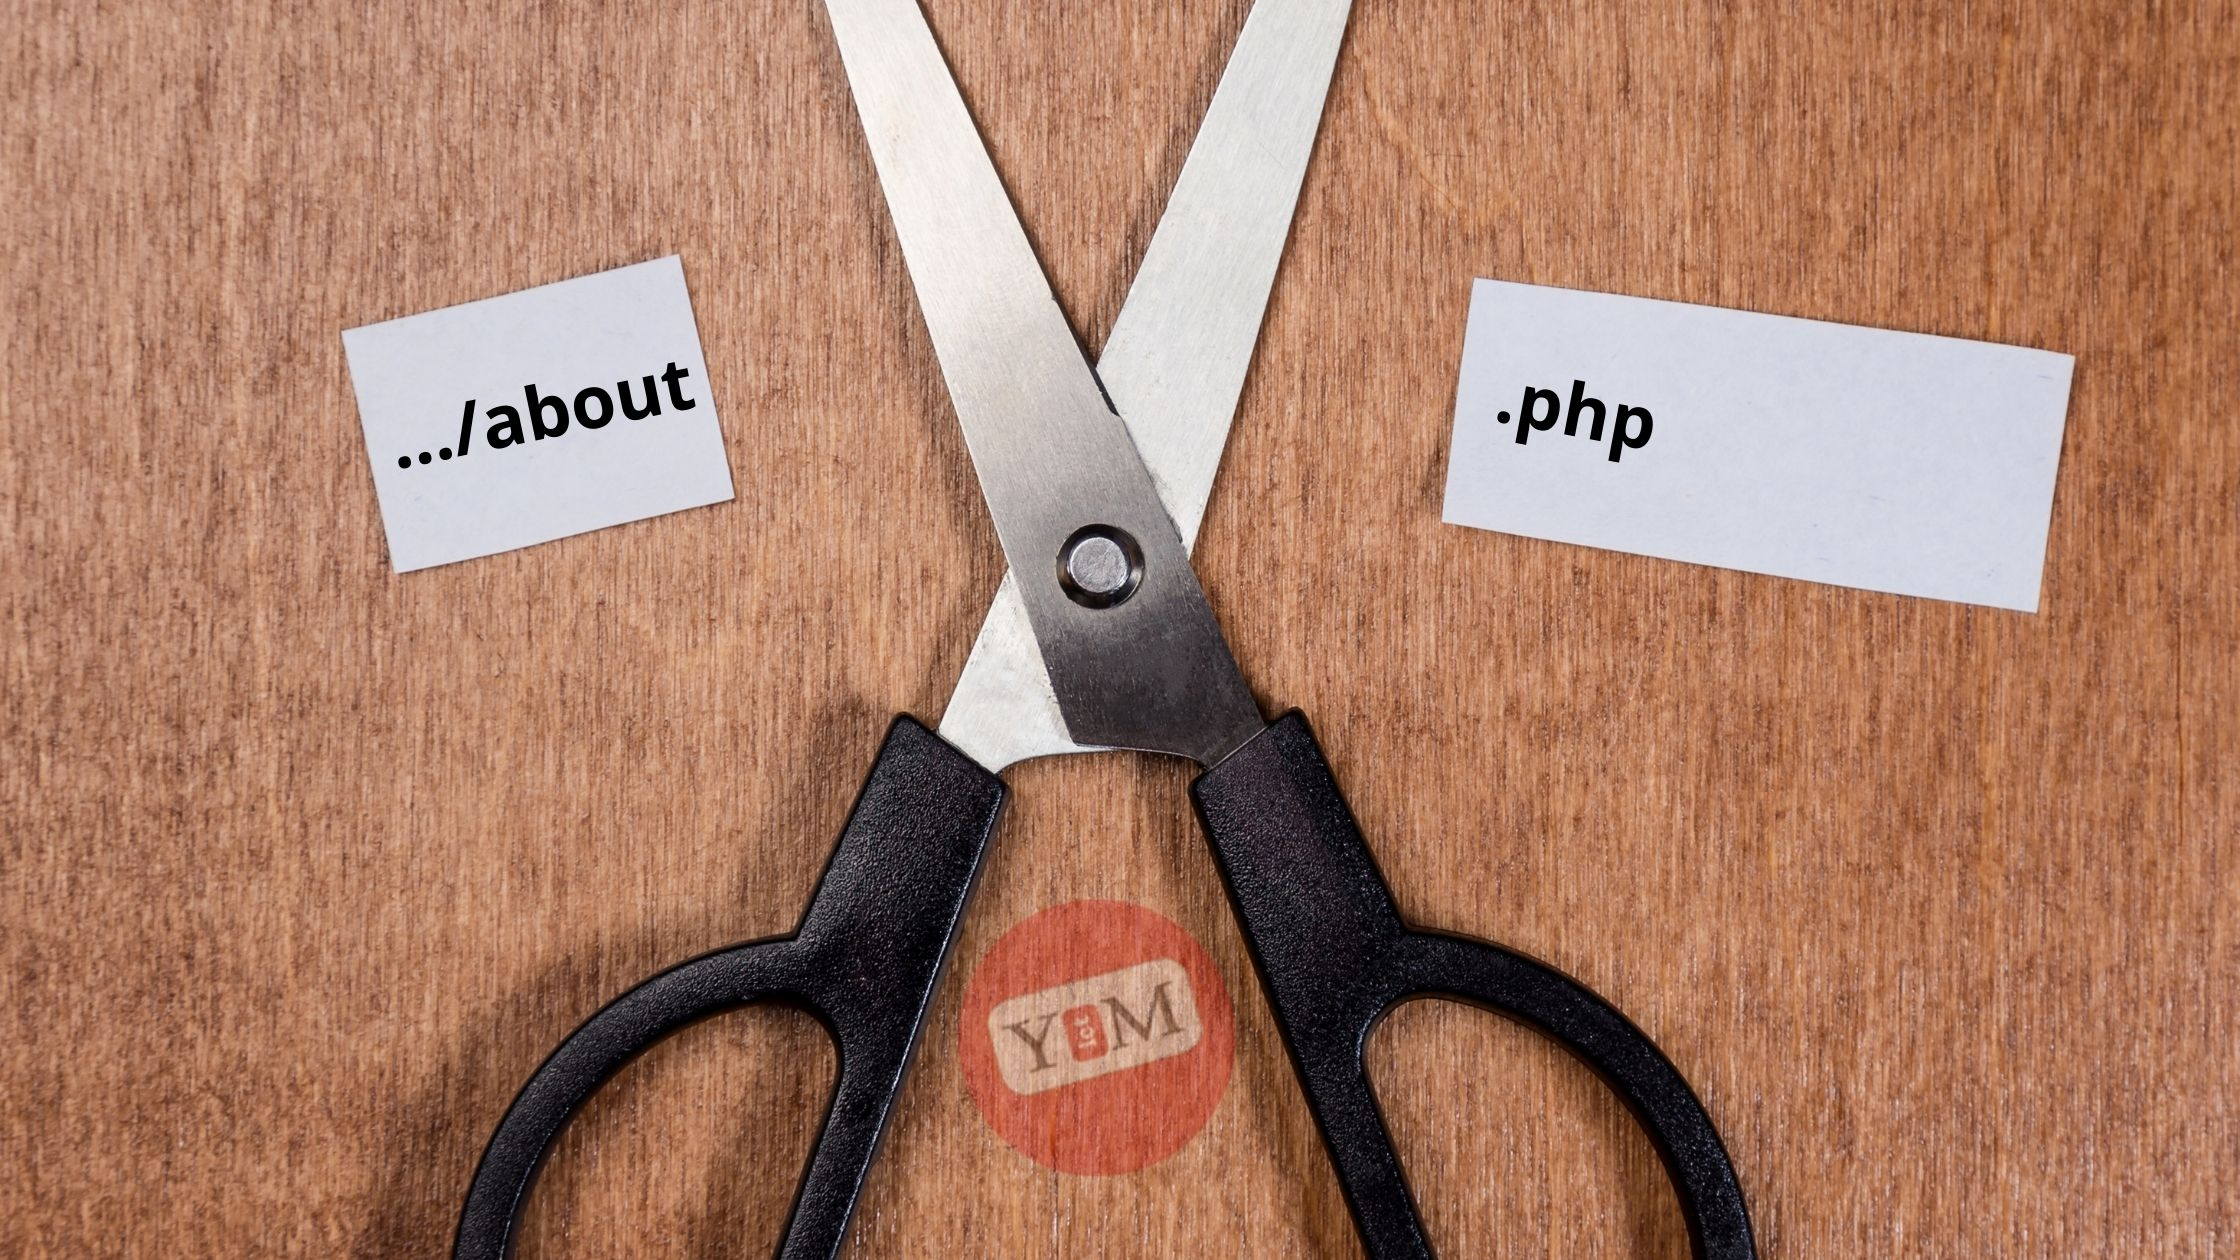 Howto remove .php, .html extensions on a web page using .htaccess file